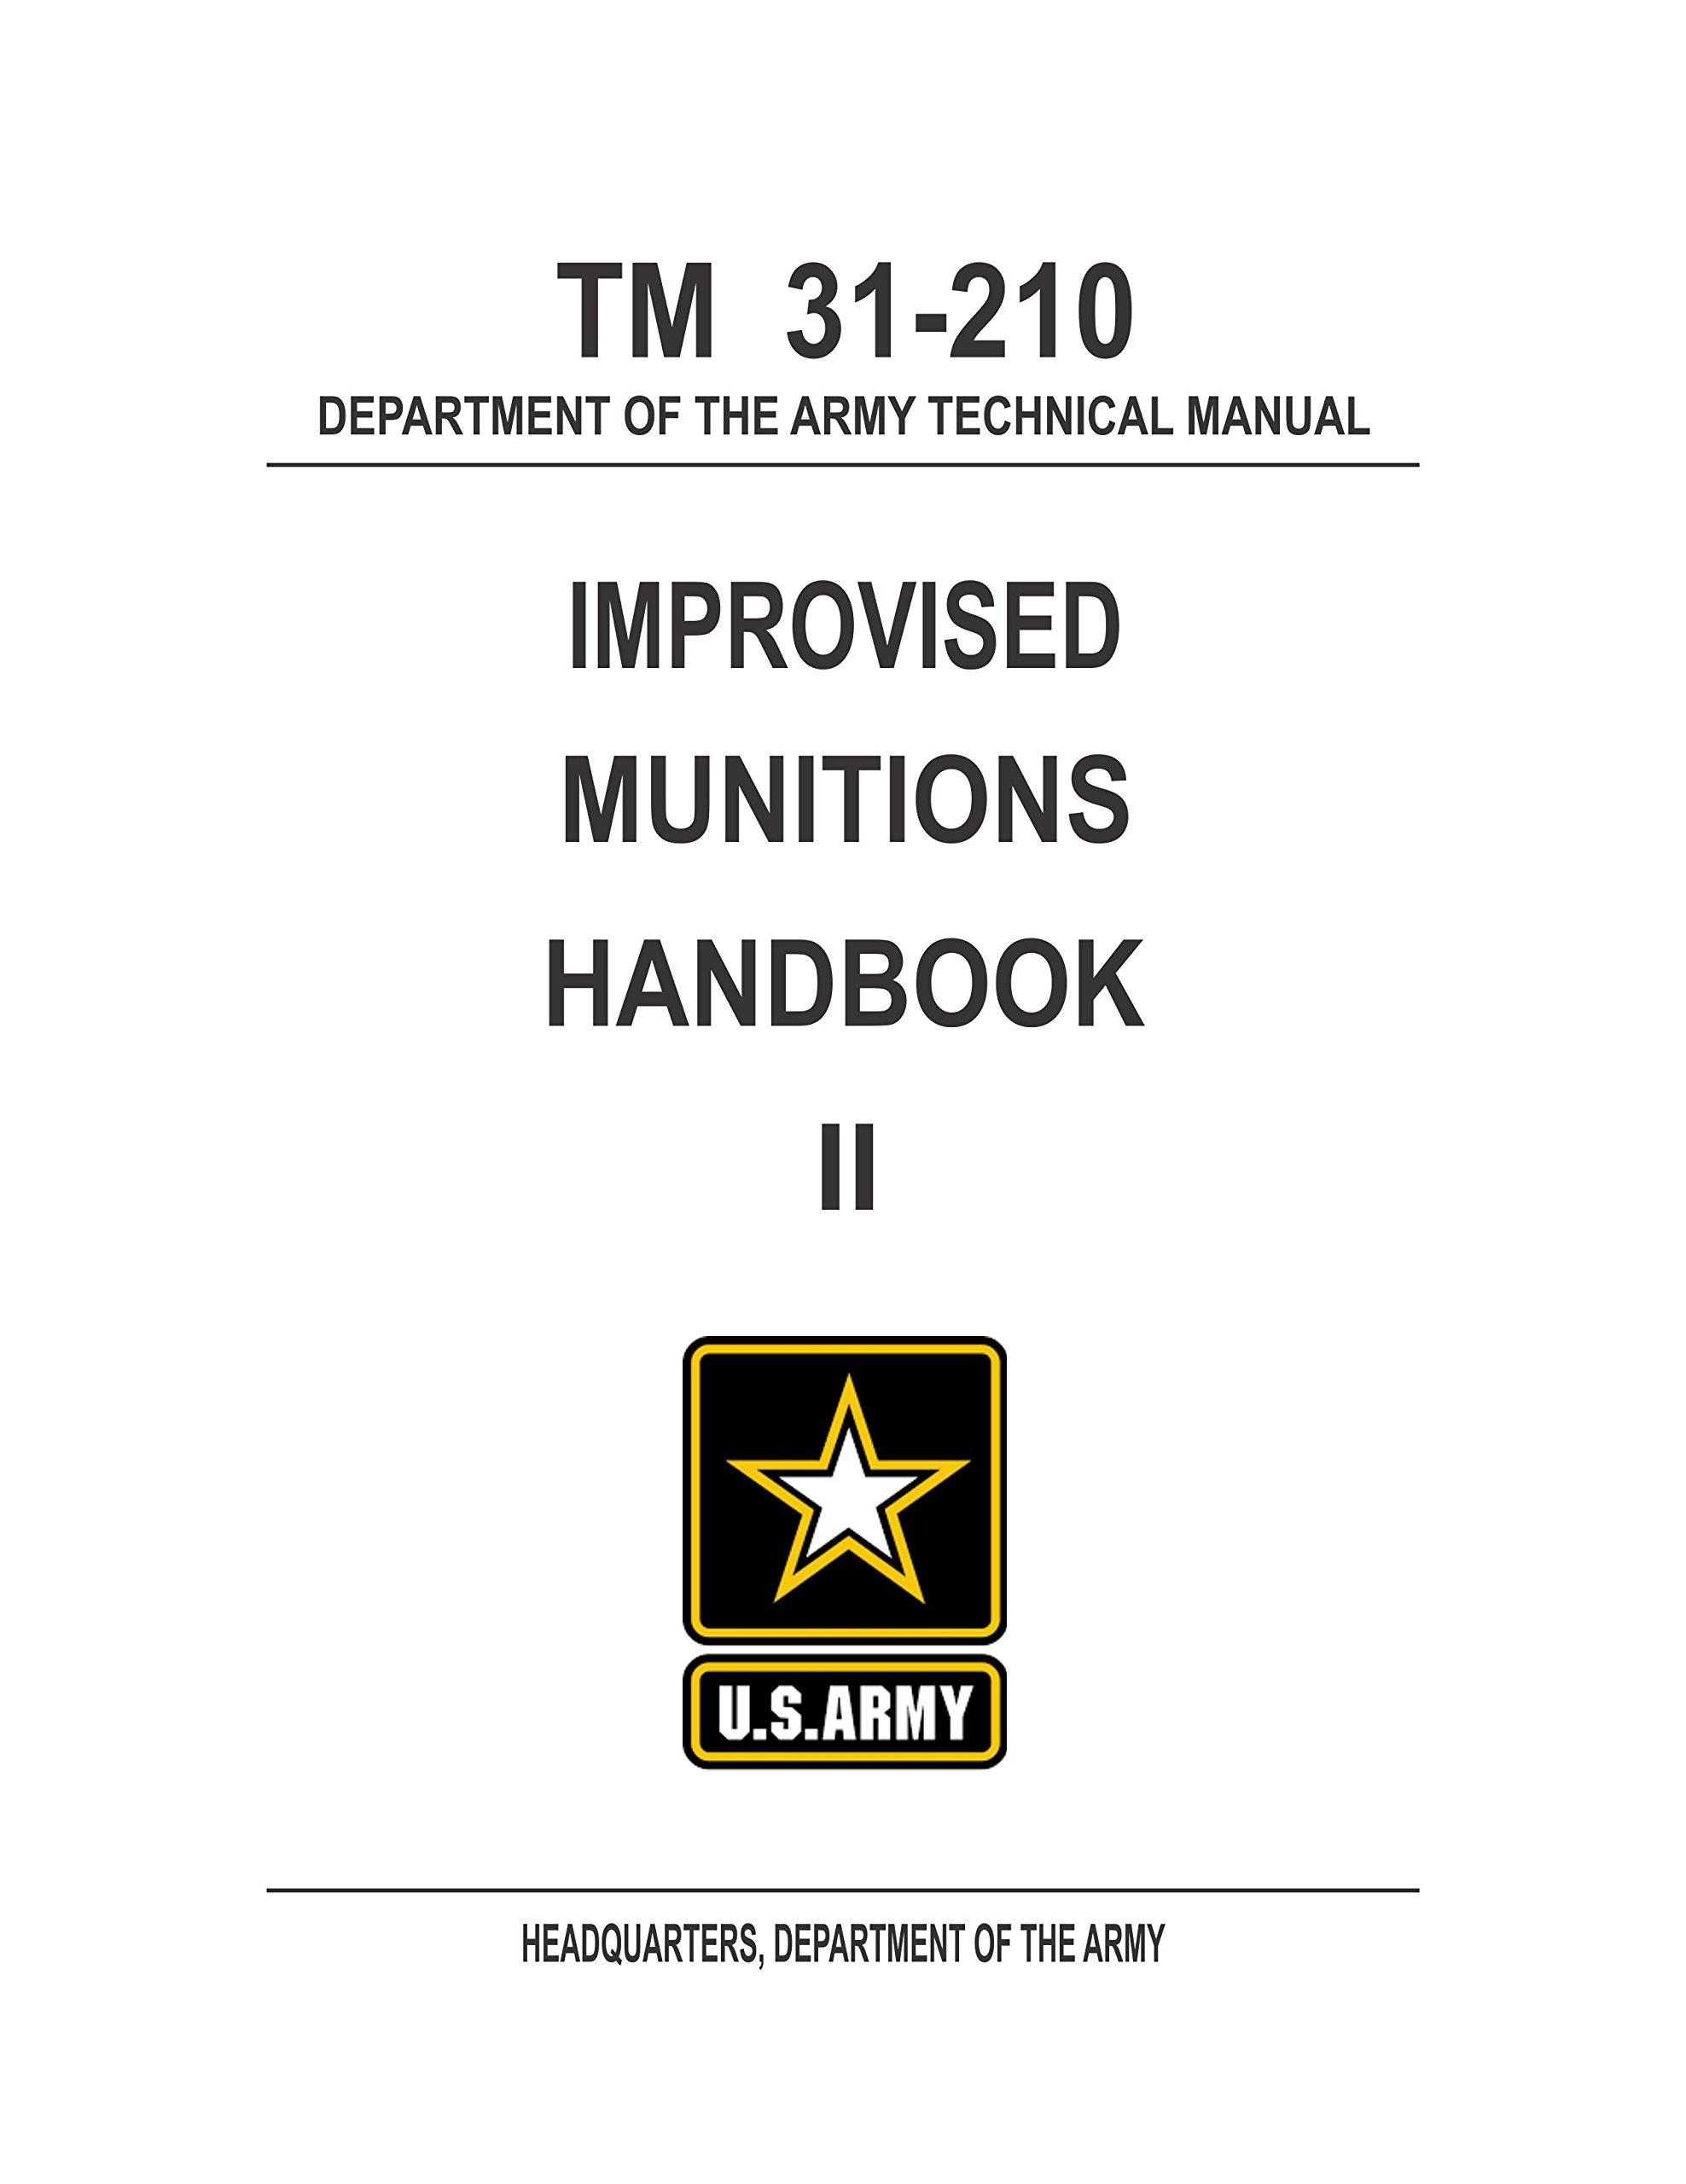 TM 31-210 Improvised Munitions Handbook (Poor Man's James Bond Volume II) [Quality, Loose Leaf Facsimile] PDF